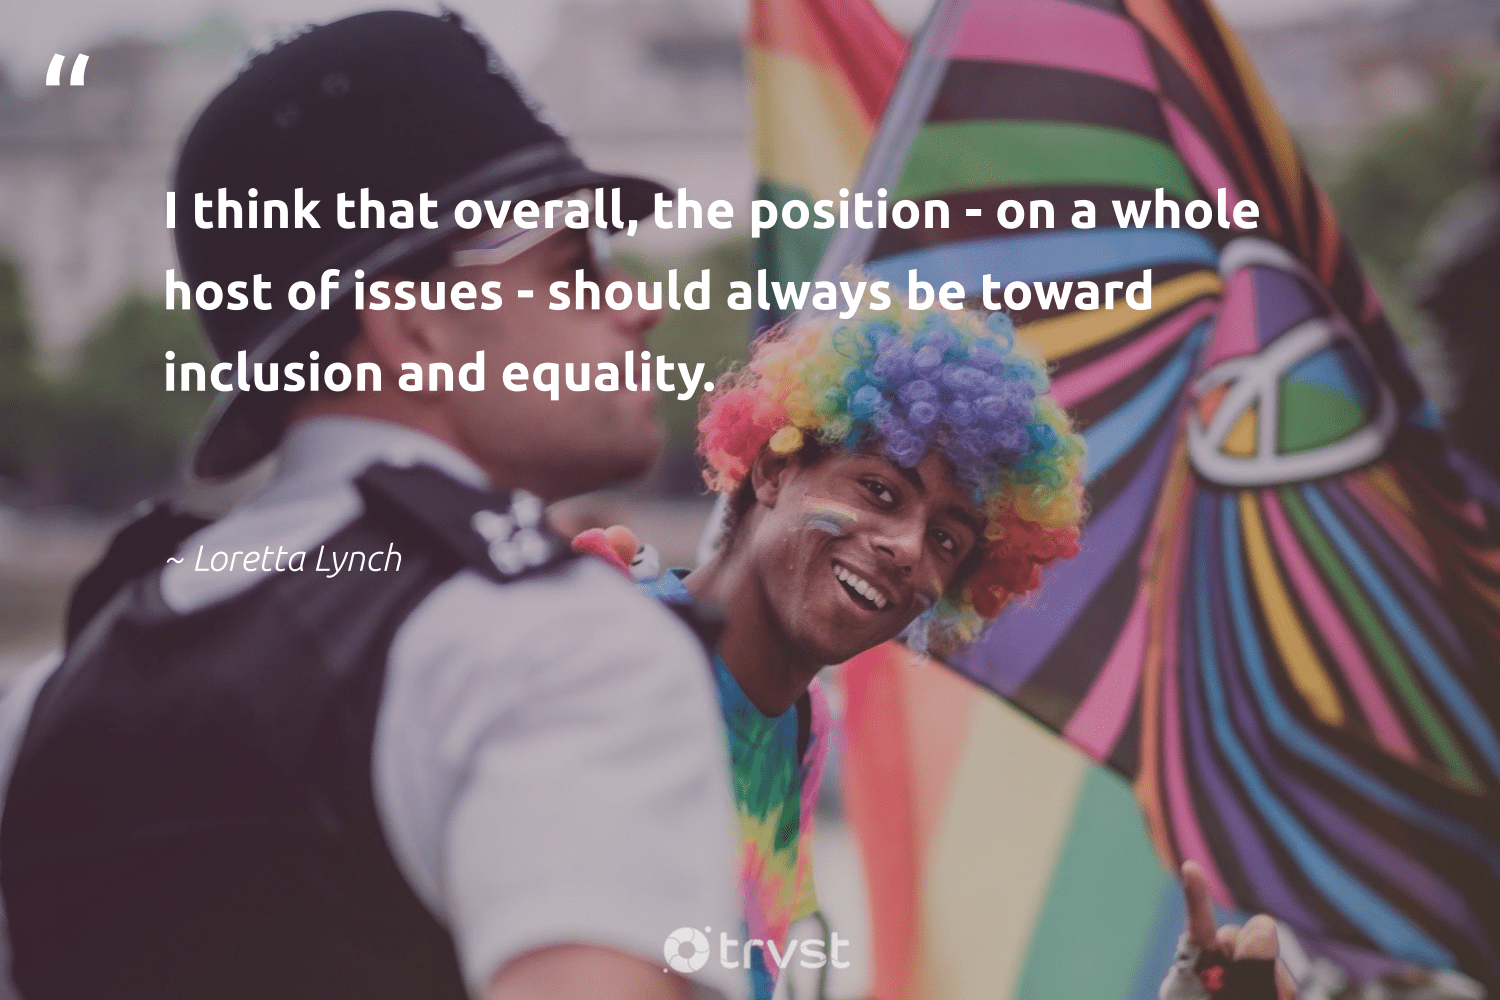 """I think that overall, the position - on a whole host of issues - should always be toward inclusion and equality.""  - Loretta Lynch #trvst #quotes #equality #inclusion #equalopportunity #socialgood #makeadifference #beinspired #equalrights #giveback #bethechange #dotherightthing"